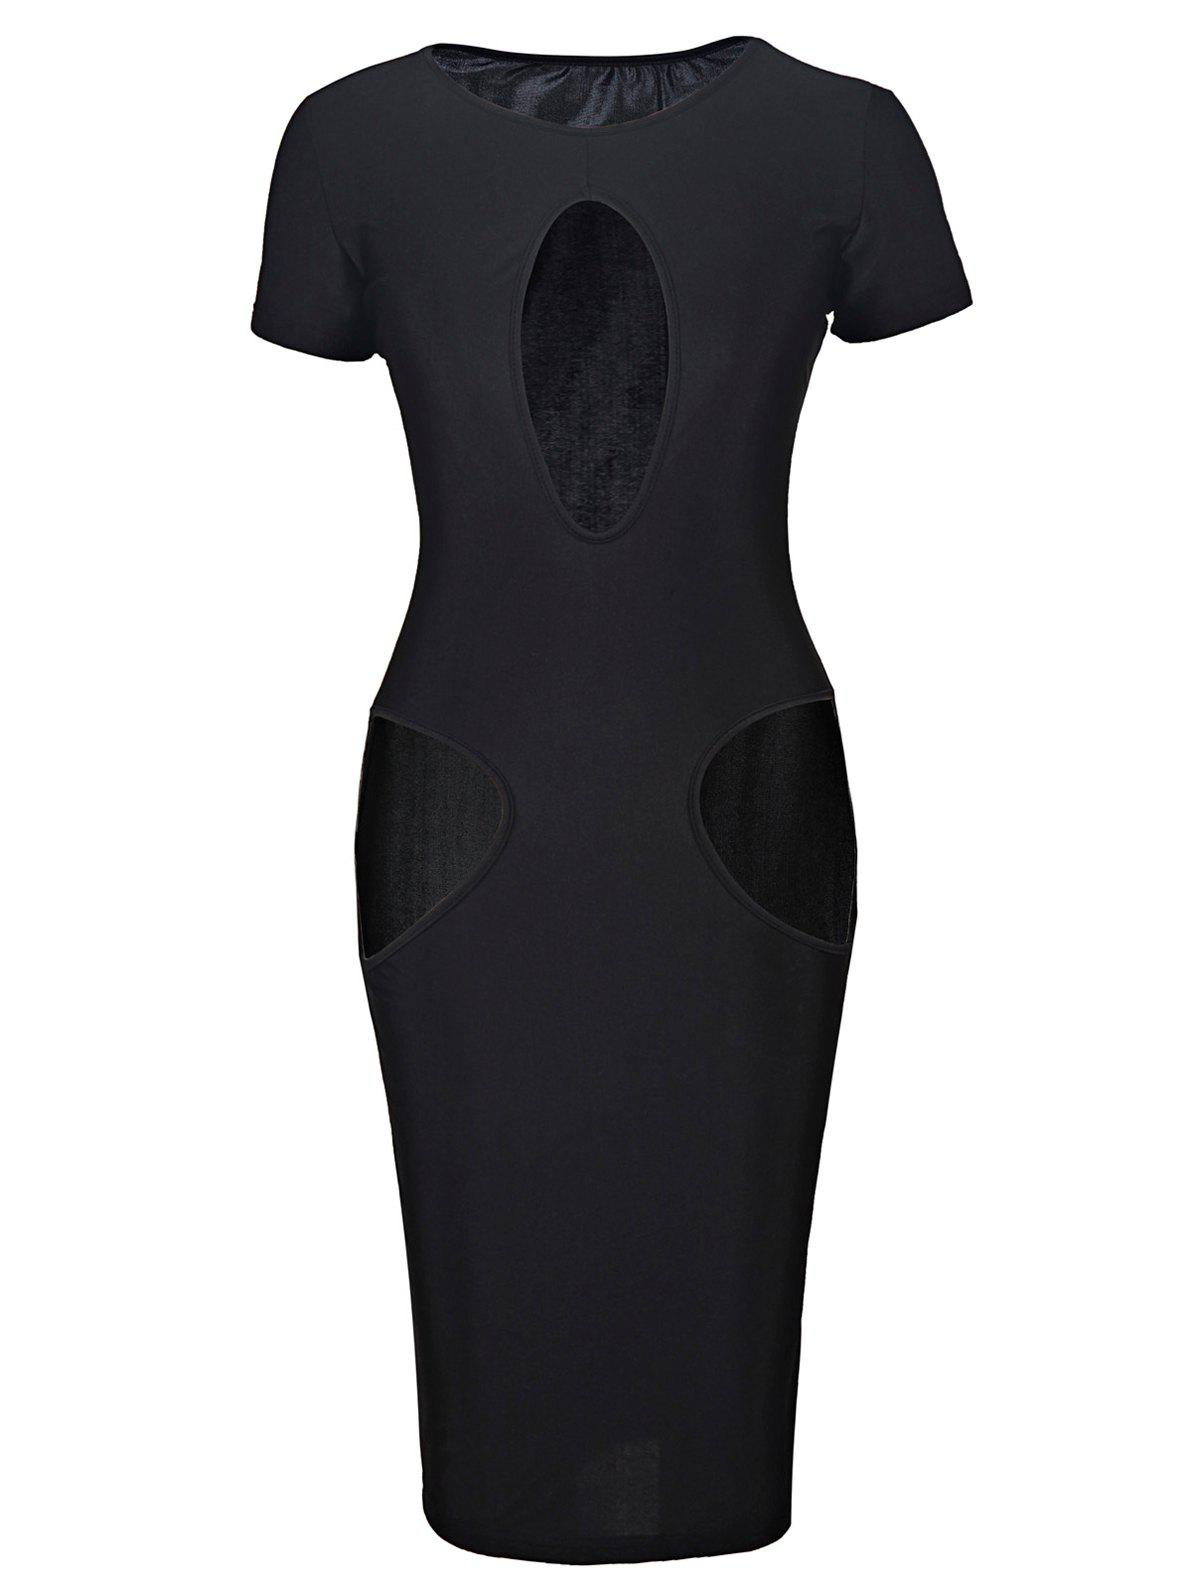 Novelty Black Jewel Neck Breast and Waist Hollow Out Bodycon Dress For Women - BLACK M